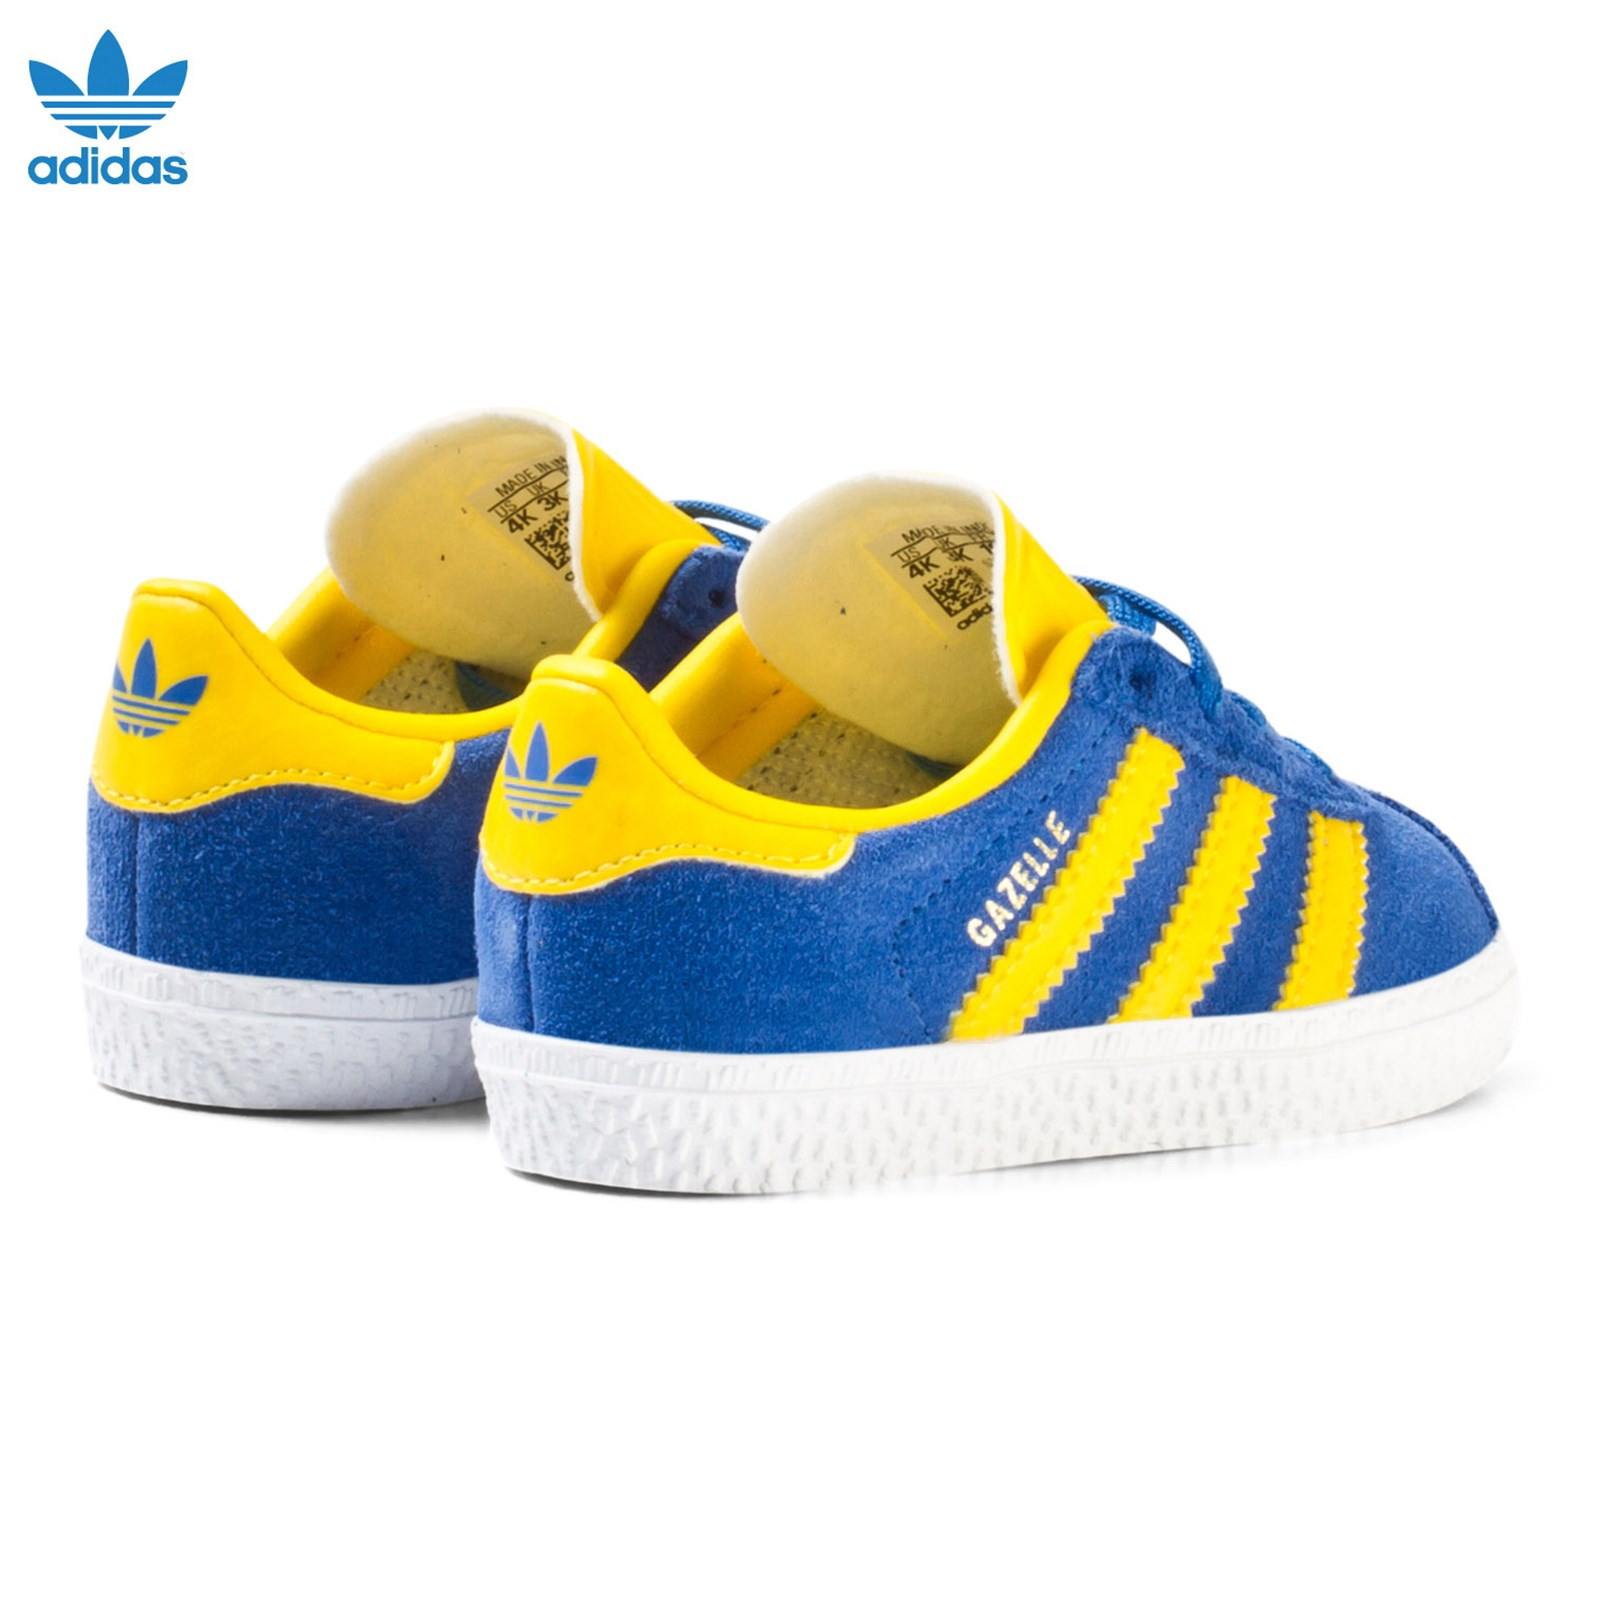 adidas Originals - Blue and Yellow Gazelle Infant Trainers ...